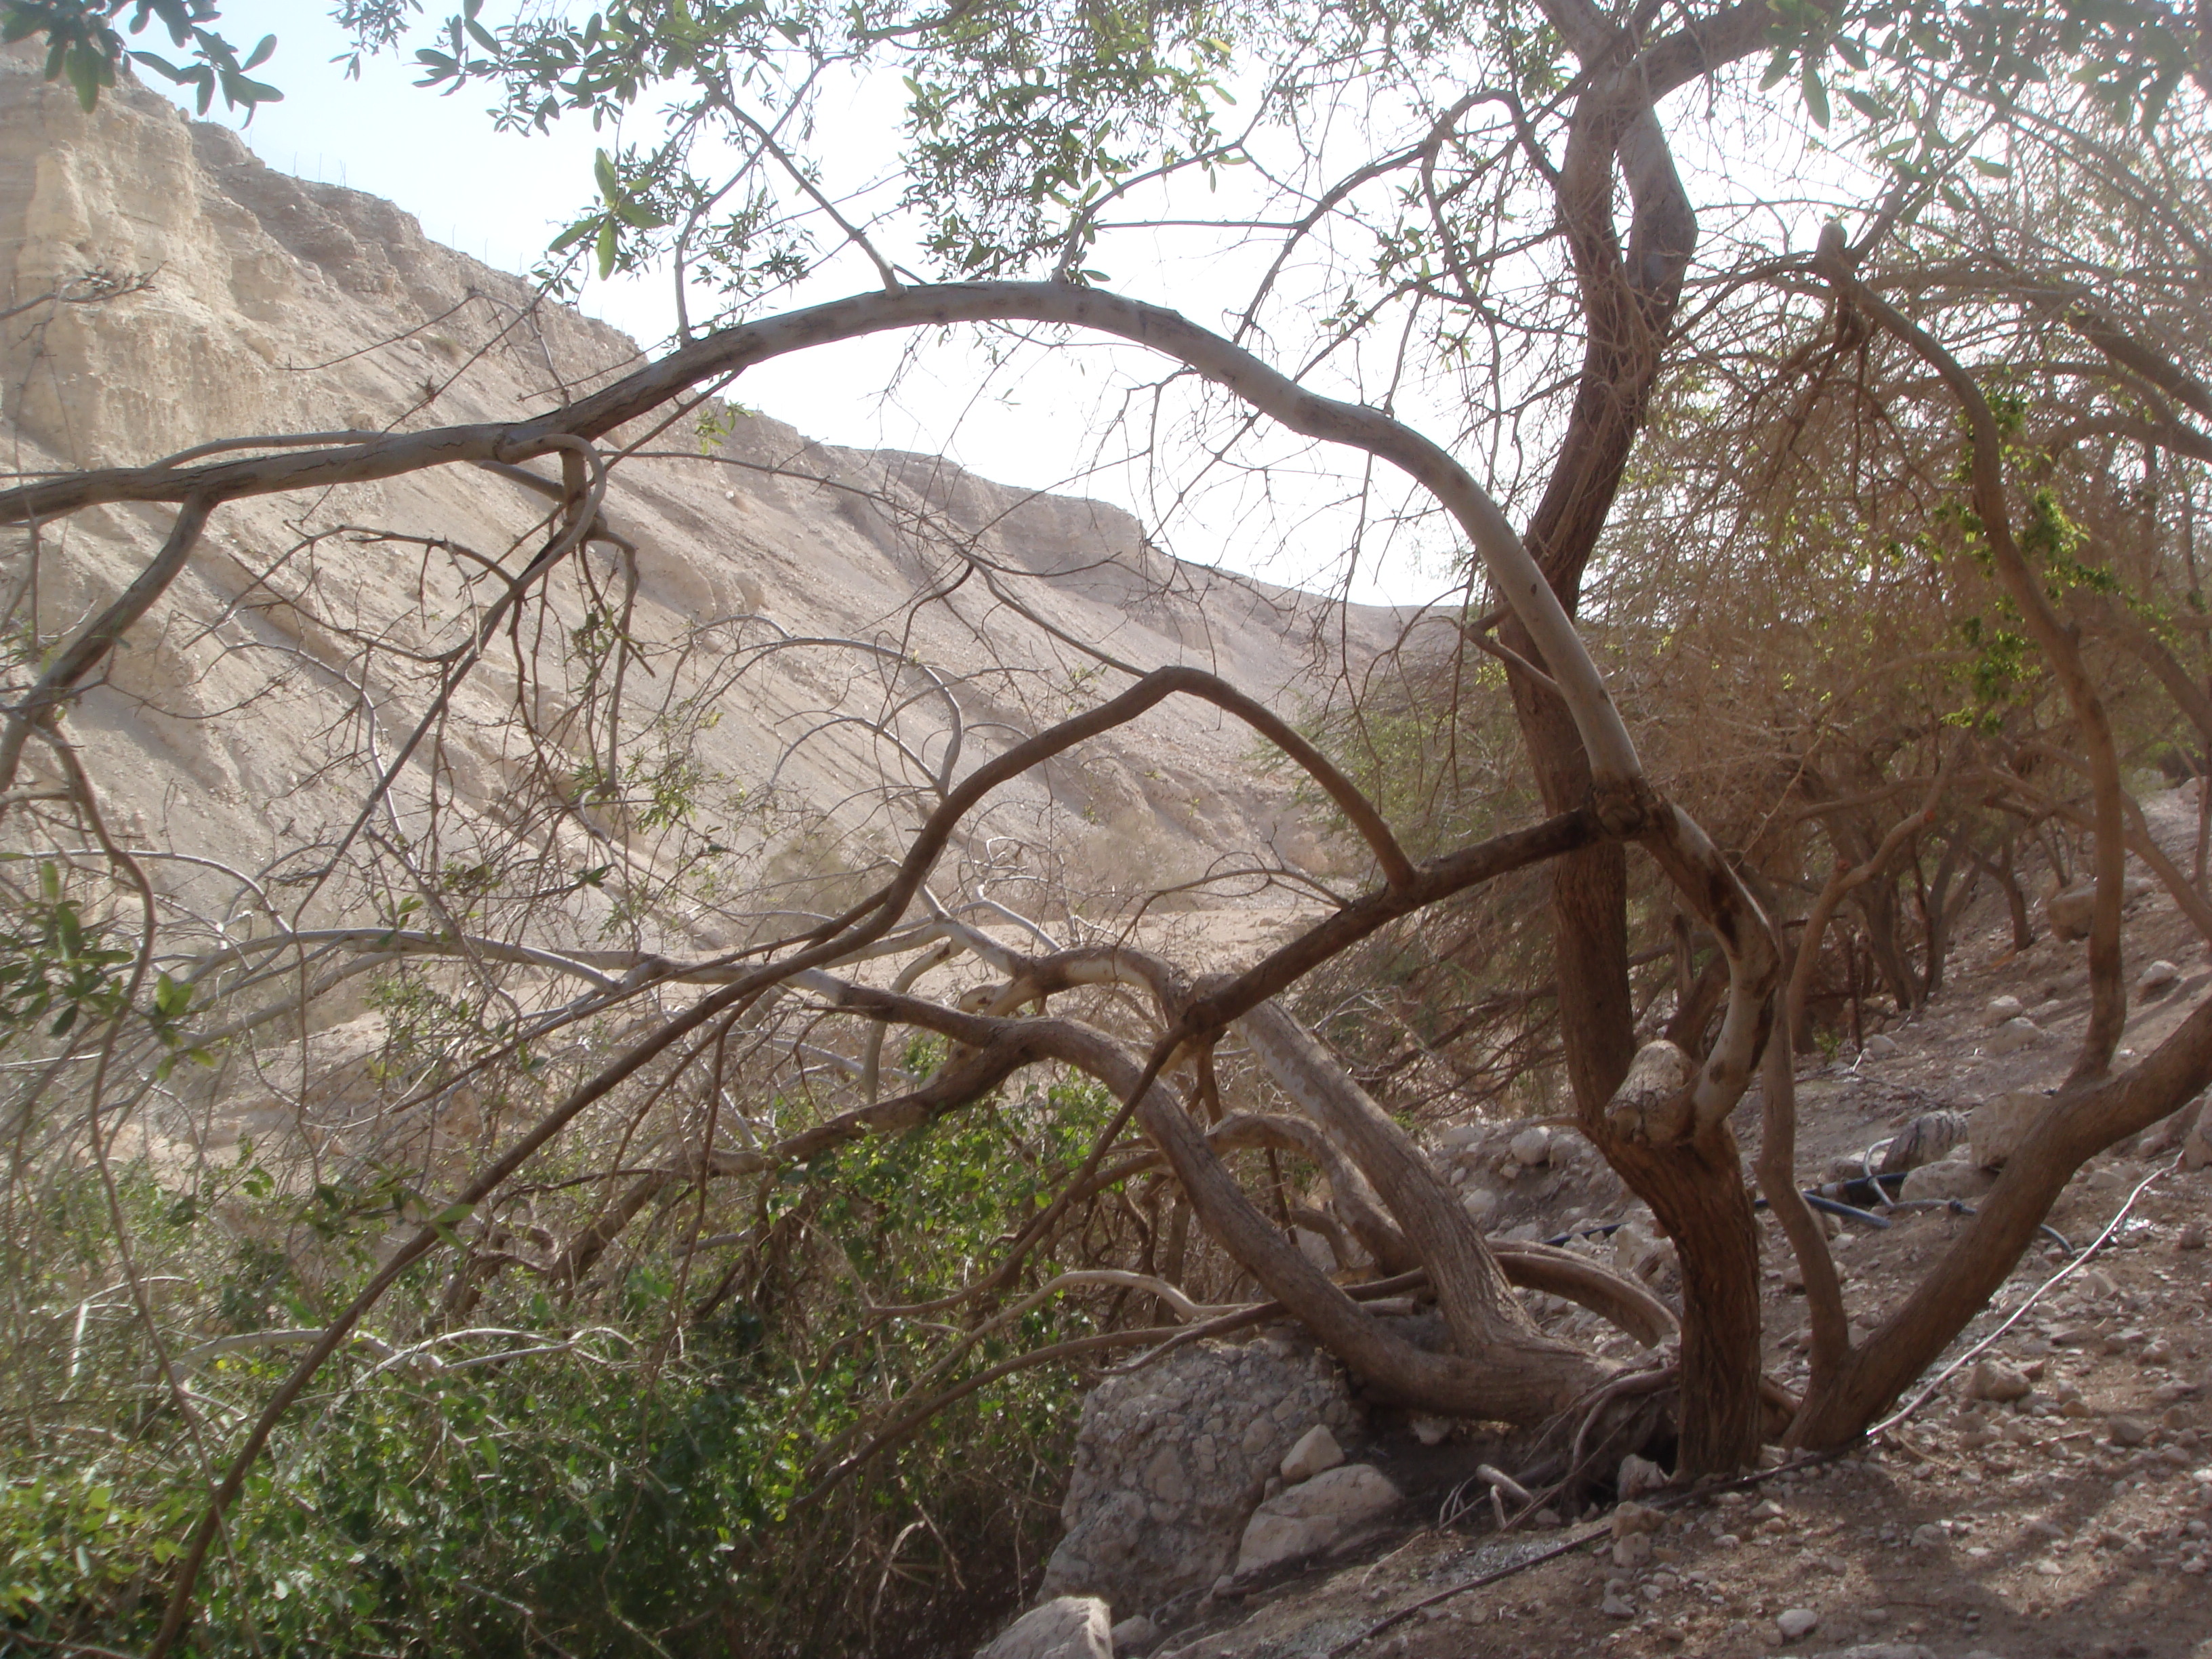 FLOURISHING IN DROUGHT, PART 1: THE SECRET OF THE TREE